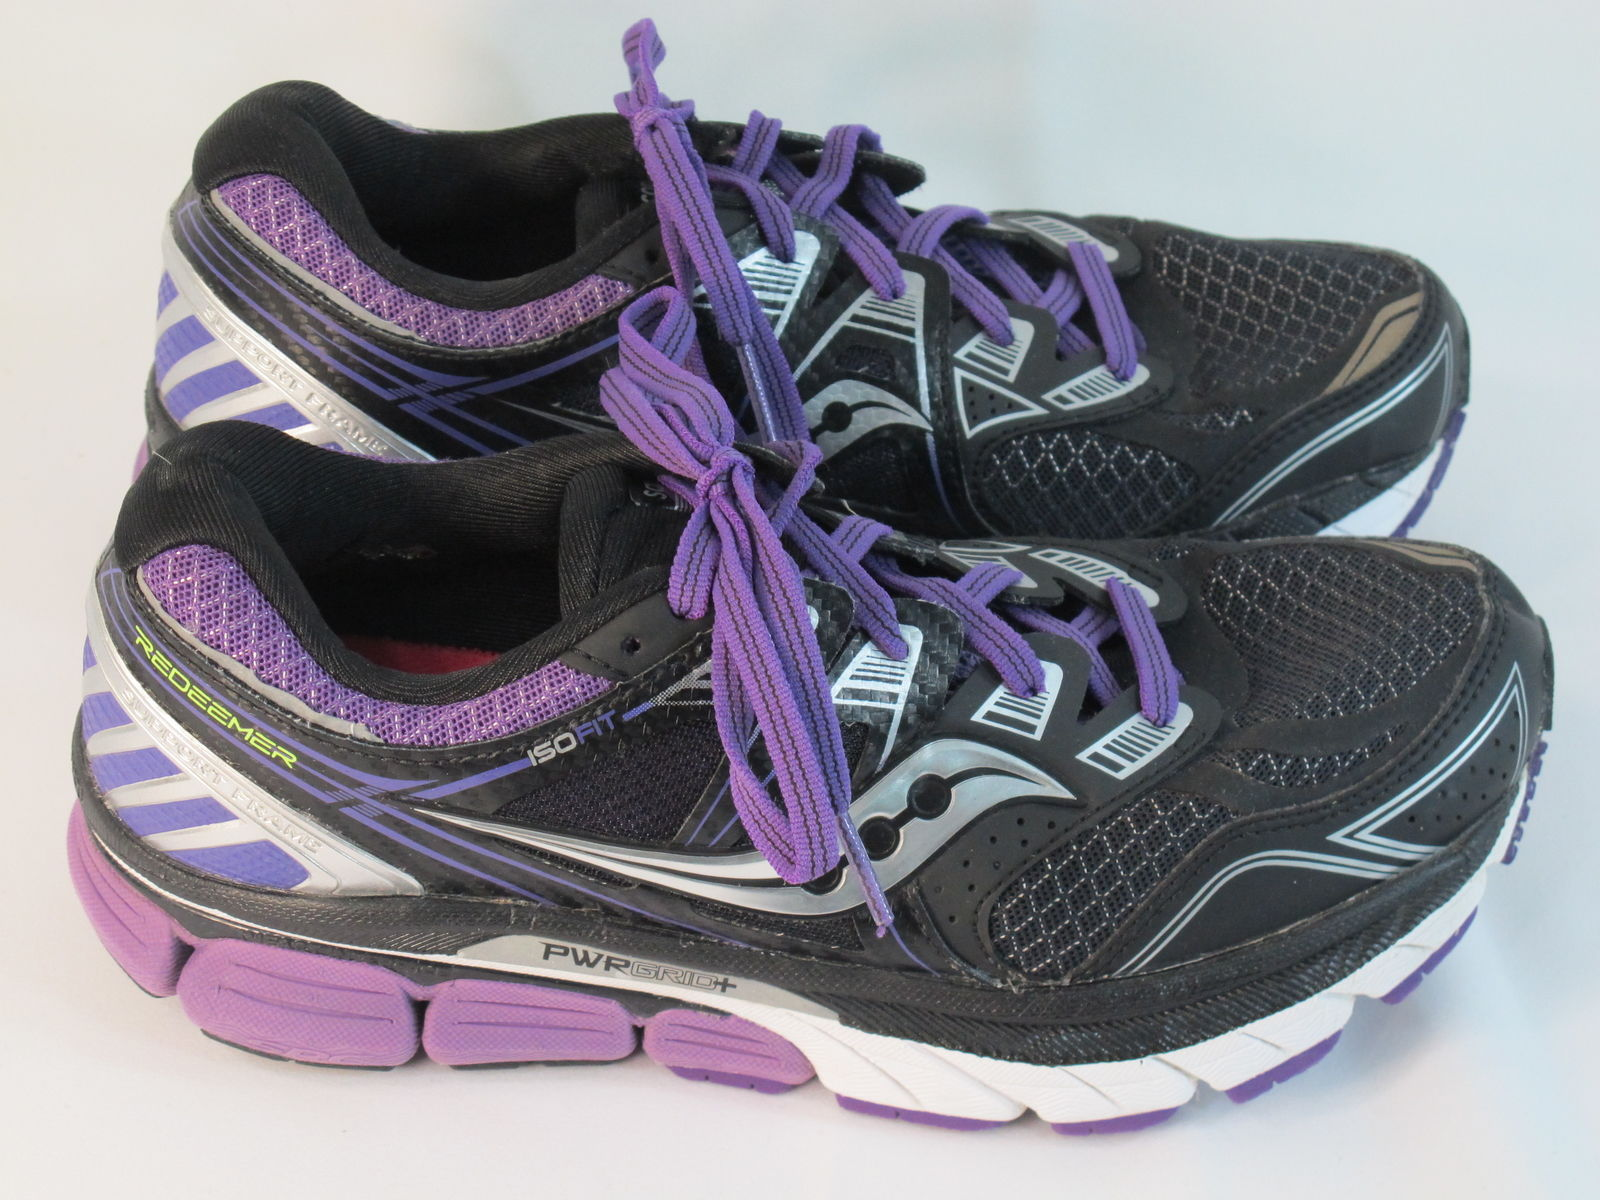 Saucony Redeemer ISO Running Shoes Women's and 23 similar items